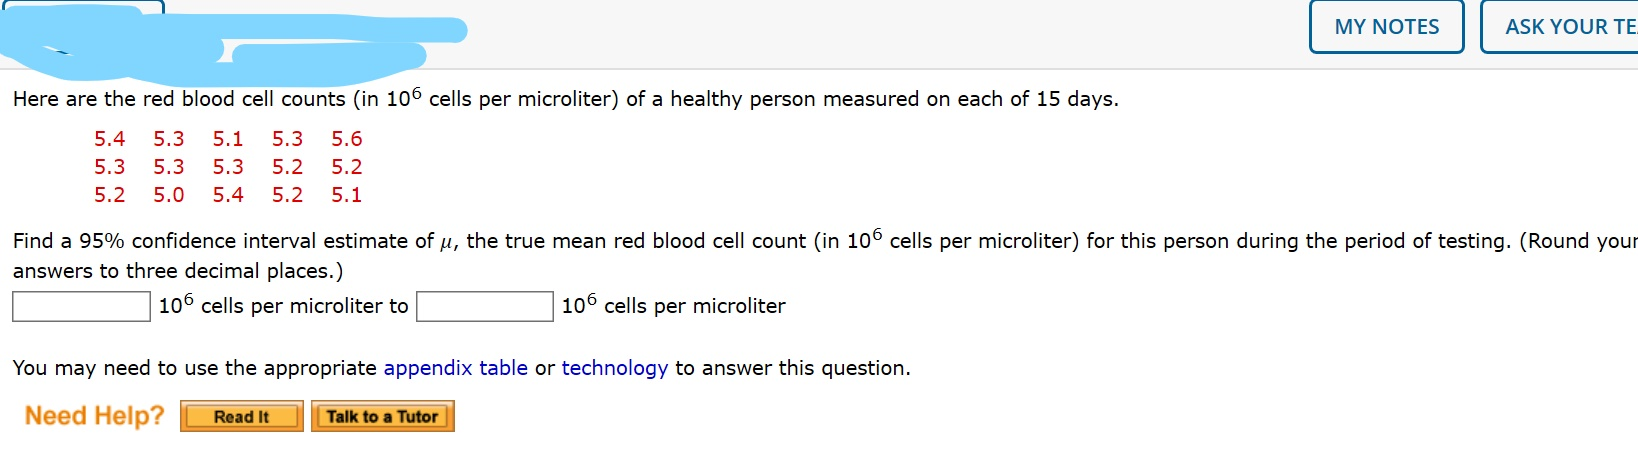 MY NOTES ASK YOUR TE Here are the red blood cell counts (in 106 cells per microliter) of a healthy person measured on each of 15 days. 5.4 5.3 5.1 5.3 5.6 5.3 5.3 5.3 5.2 5.2 5.2 5.0 5.4 5.2 5.1 Find a 95% confidence interval estimate of u, the true mean red blood cell count (in 10° cells per microliter) for this person during the period of testing. (Round your answers to three decimal places.) 106 cells per microliter to 106 cells per microliter You may need to use the appropriate appendix table or technology to answer this question. Need Help? Read It Talk to a Tutor